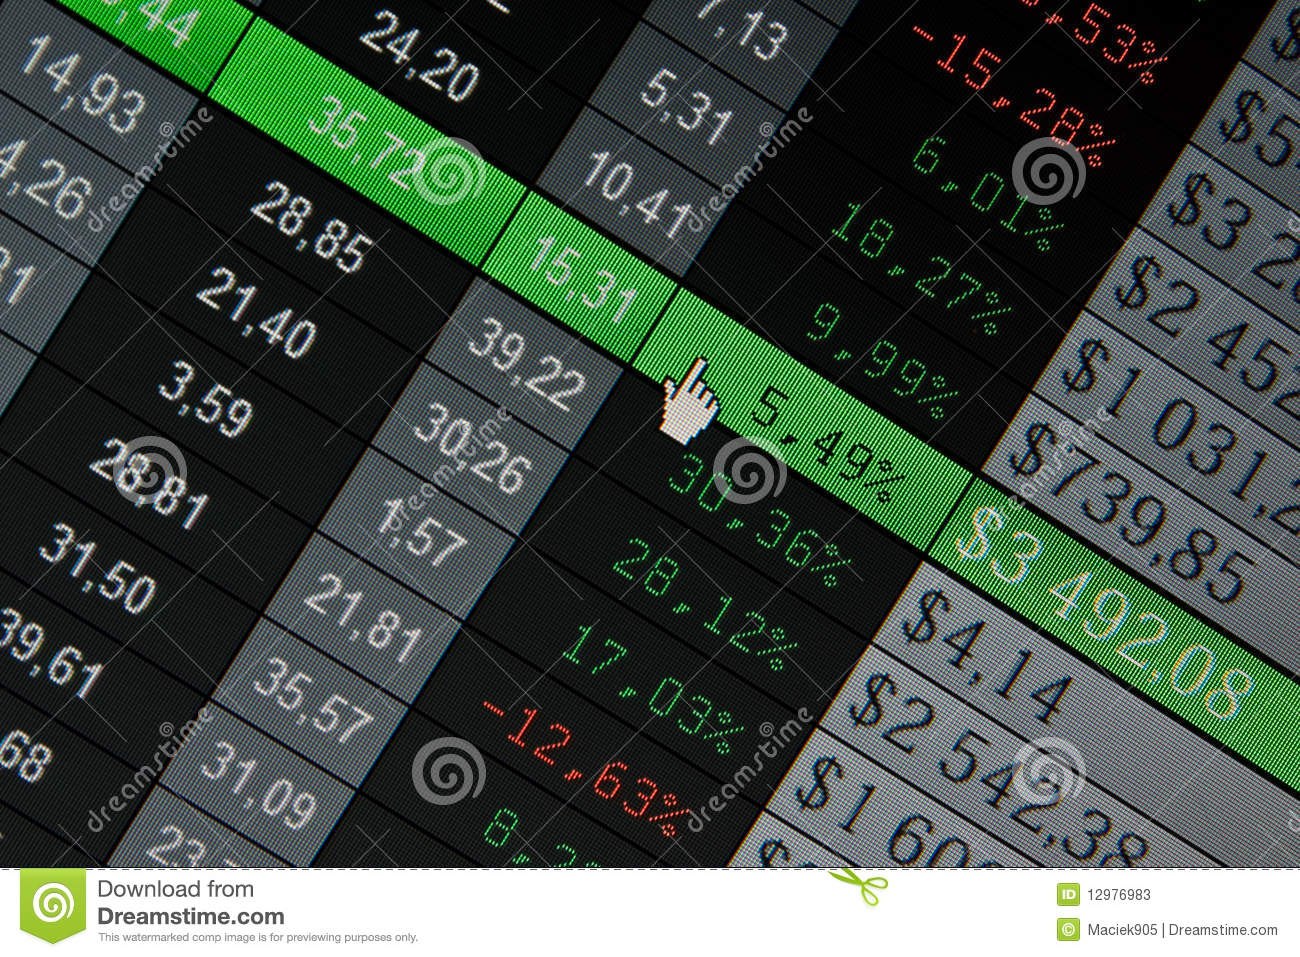 Real Time Stock Quote Real Time Stock Quote Enchanting Real Time Stock Quotes Stock